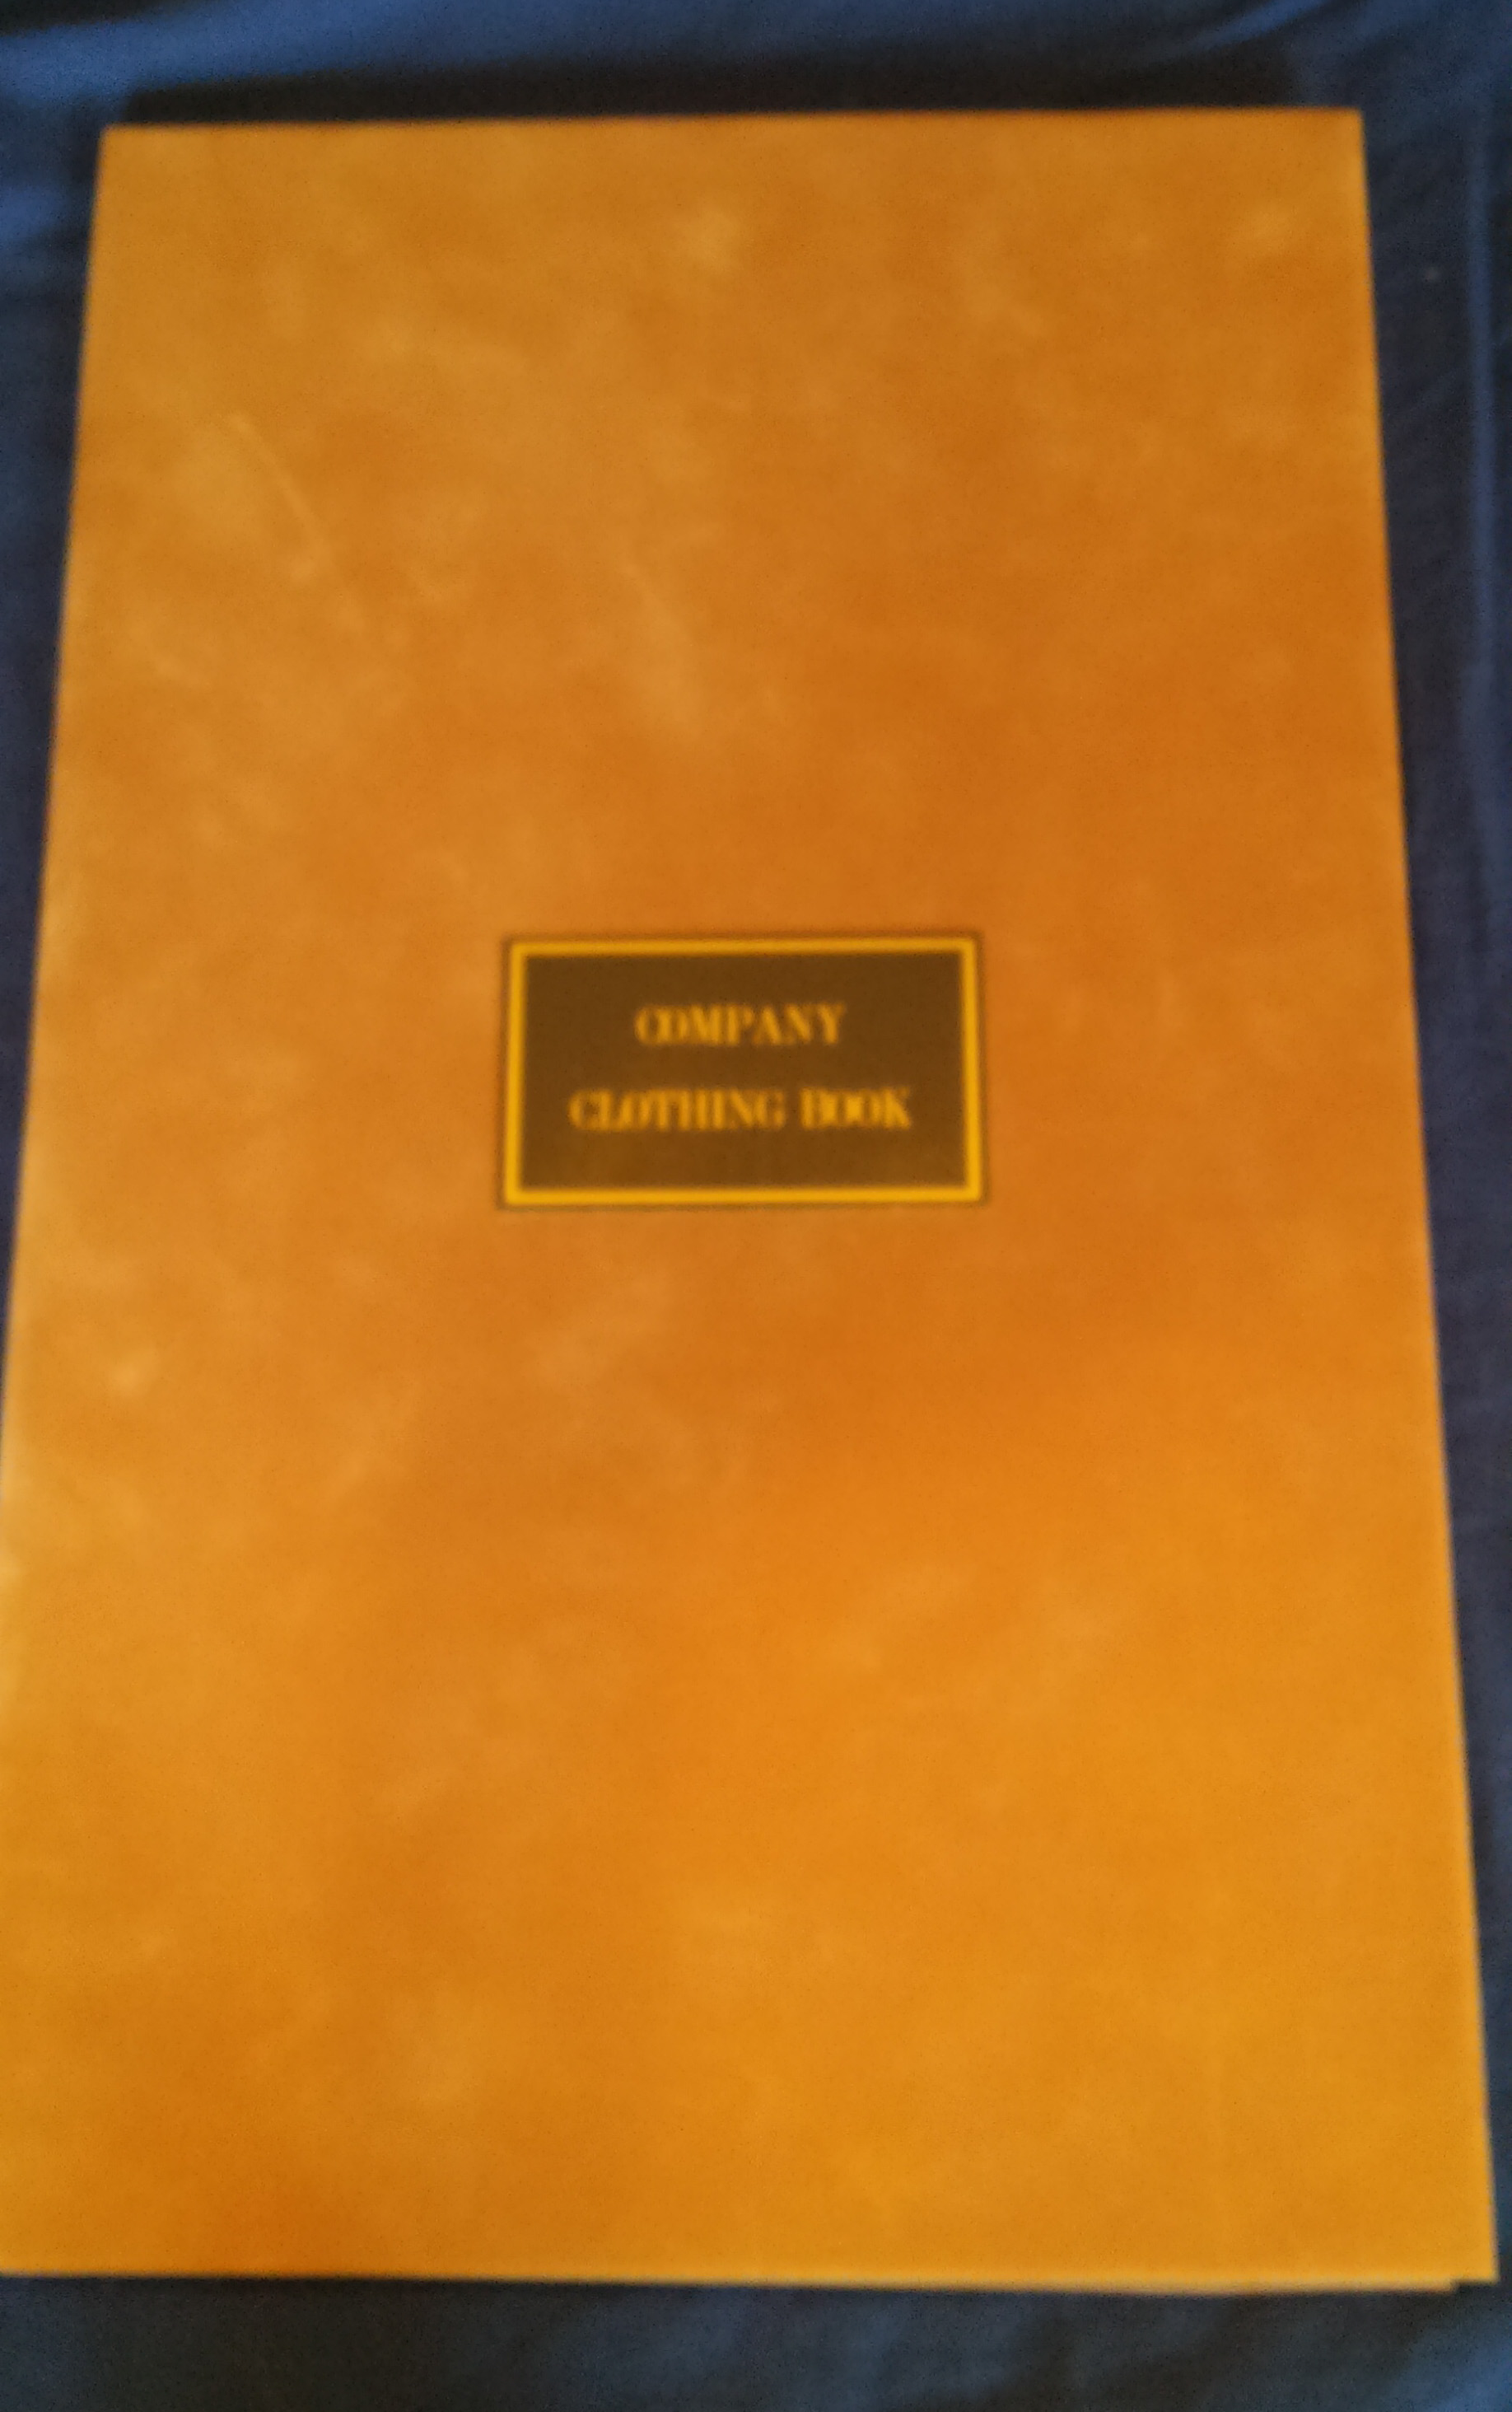 Company Clothing Book